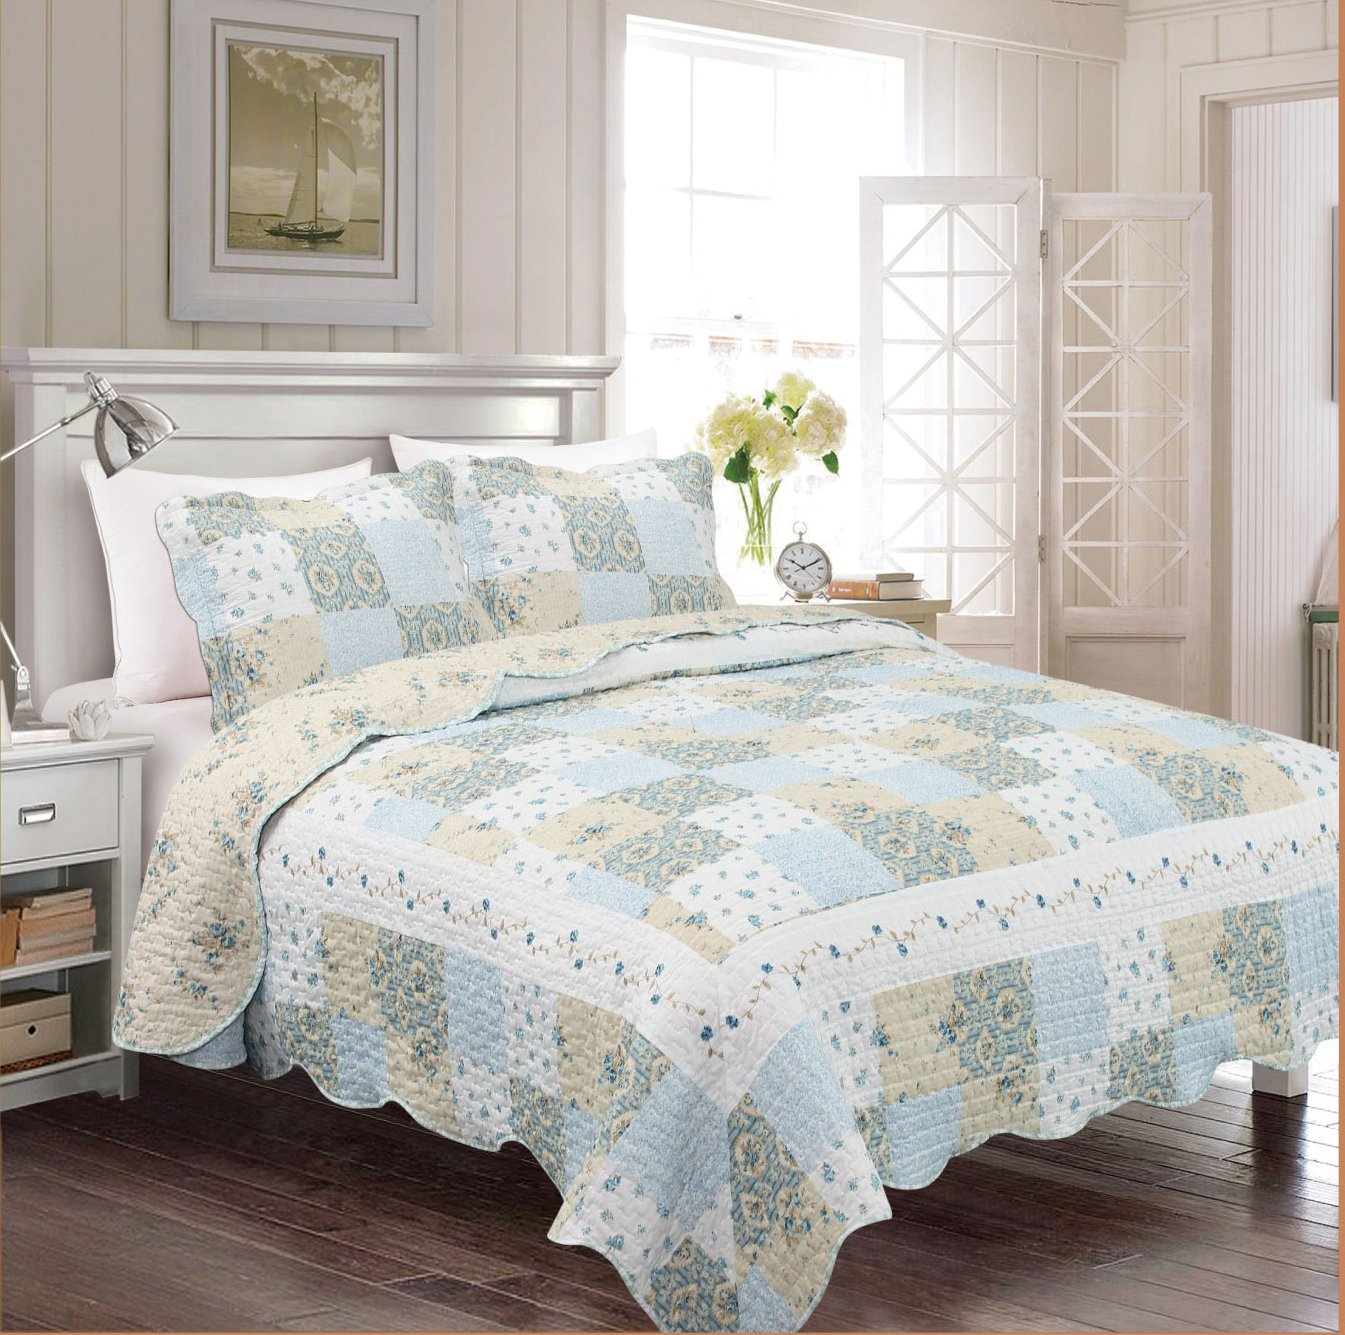 Fancy Collection 3pc Bedspread Bed Cover Floral Off White Blue Beige Reversible New # Mdison (Full/Queen)